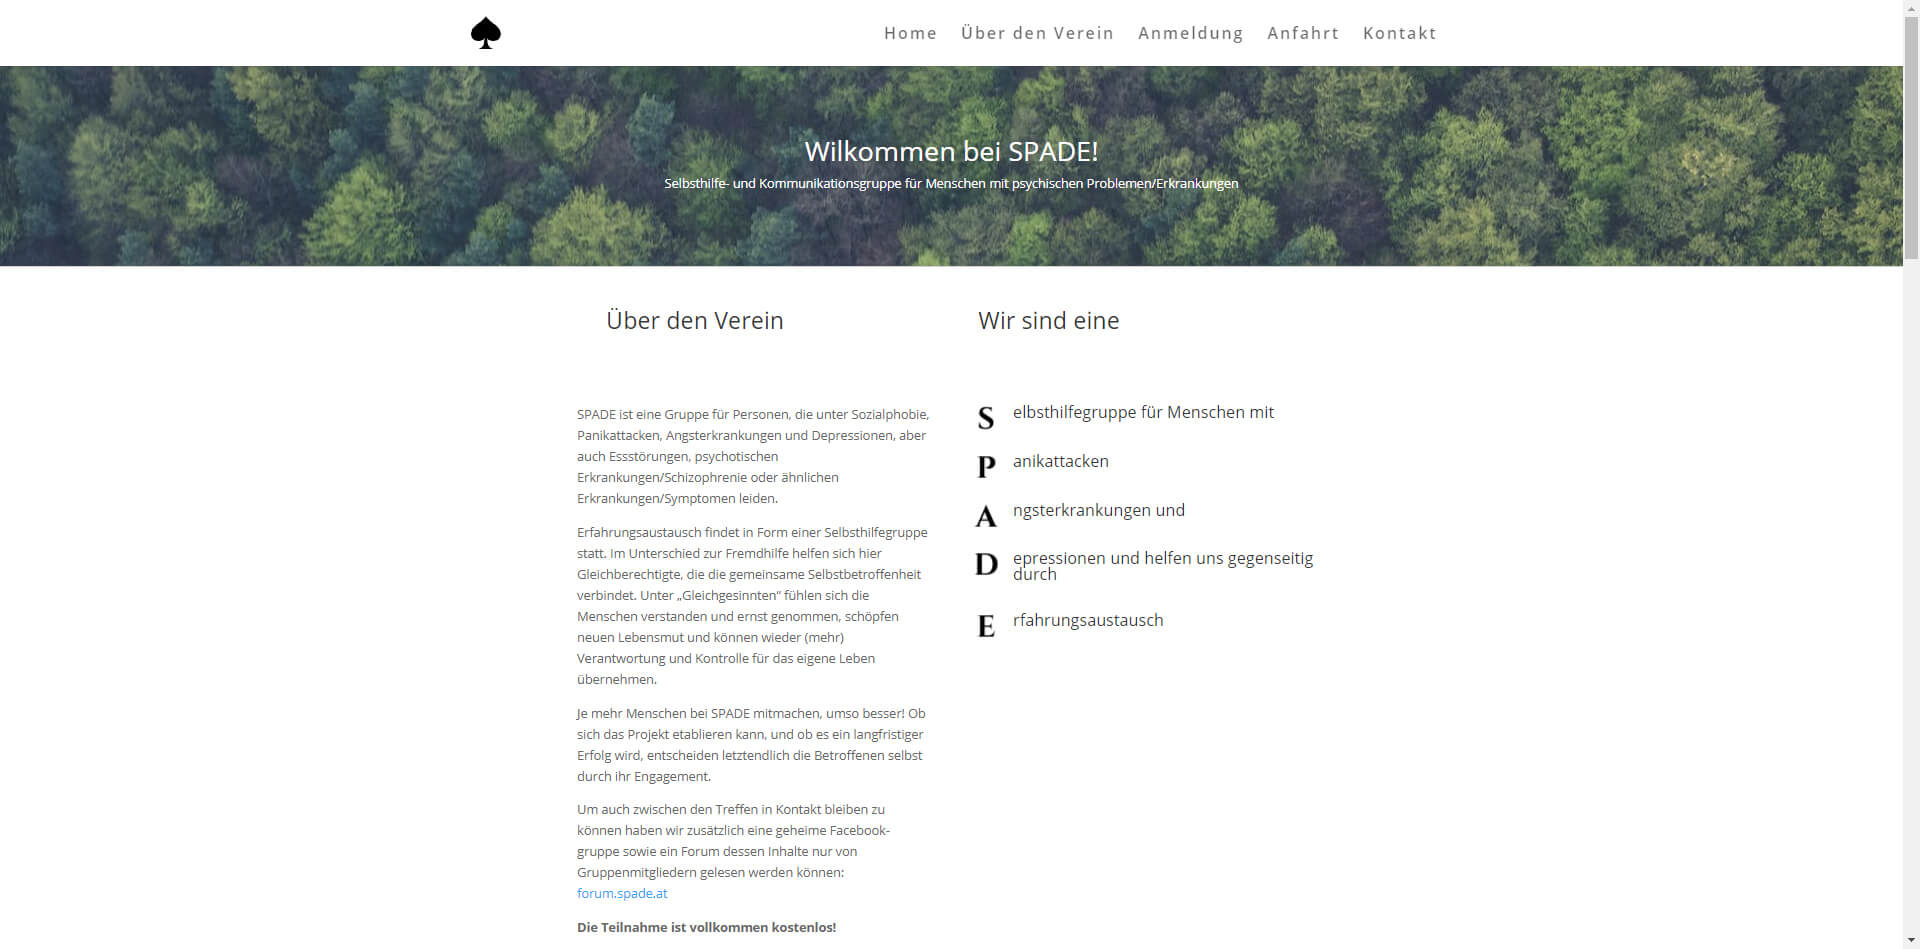 Free webdesign and hosting for non-profit organisation spade.at